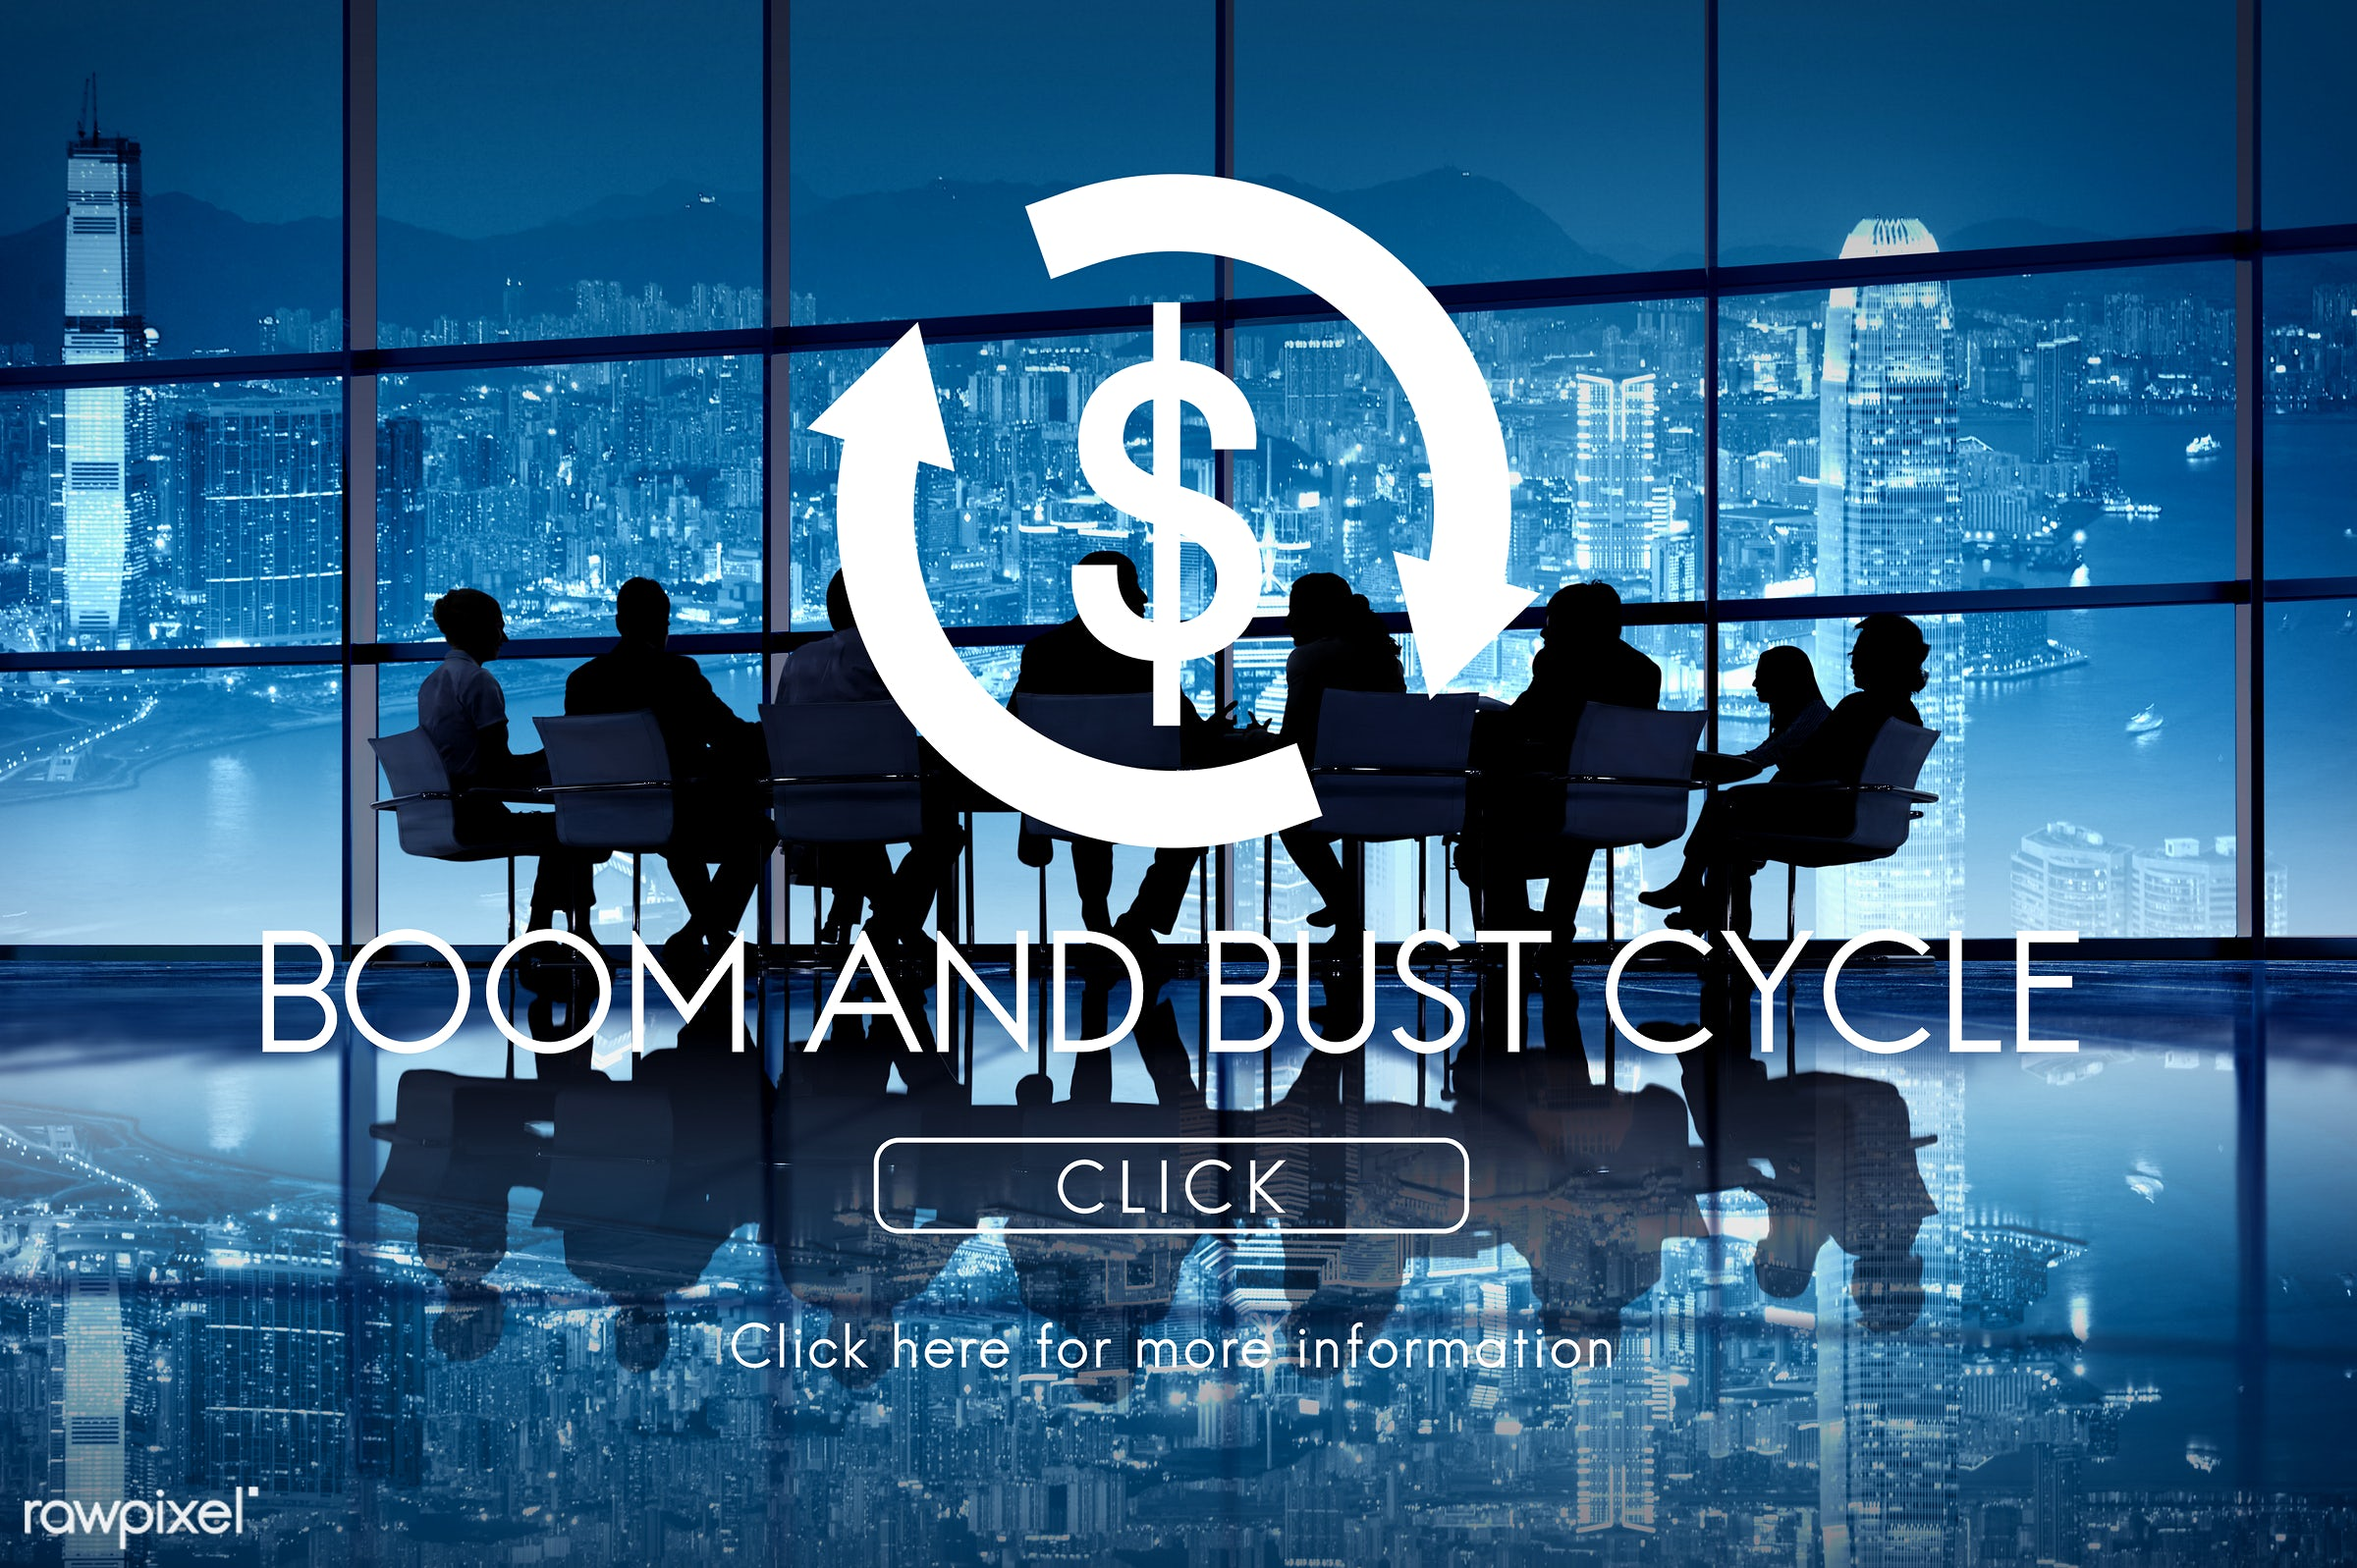 boom and bust cycle, building, business, business cycle, business people, businessmen, businesswomen, cityscape, click,...